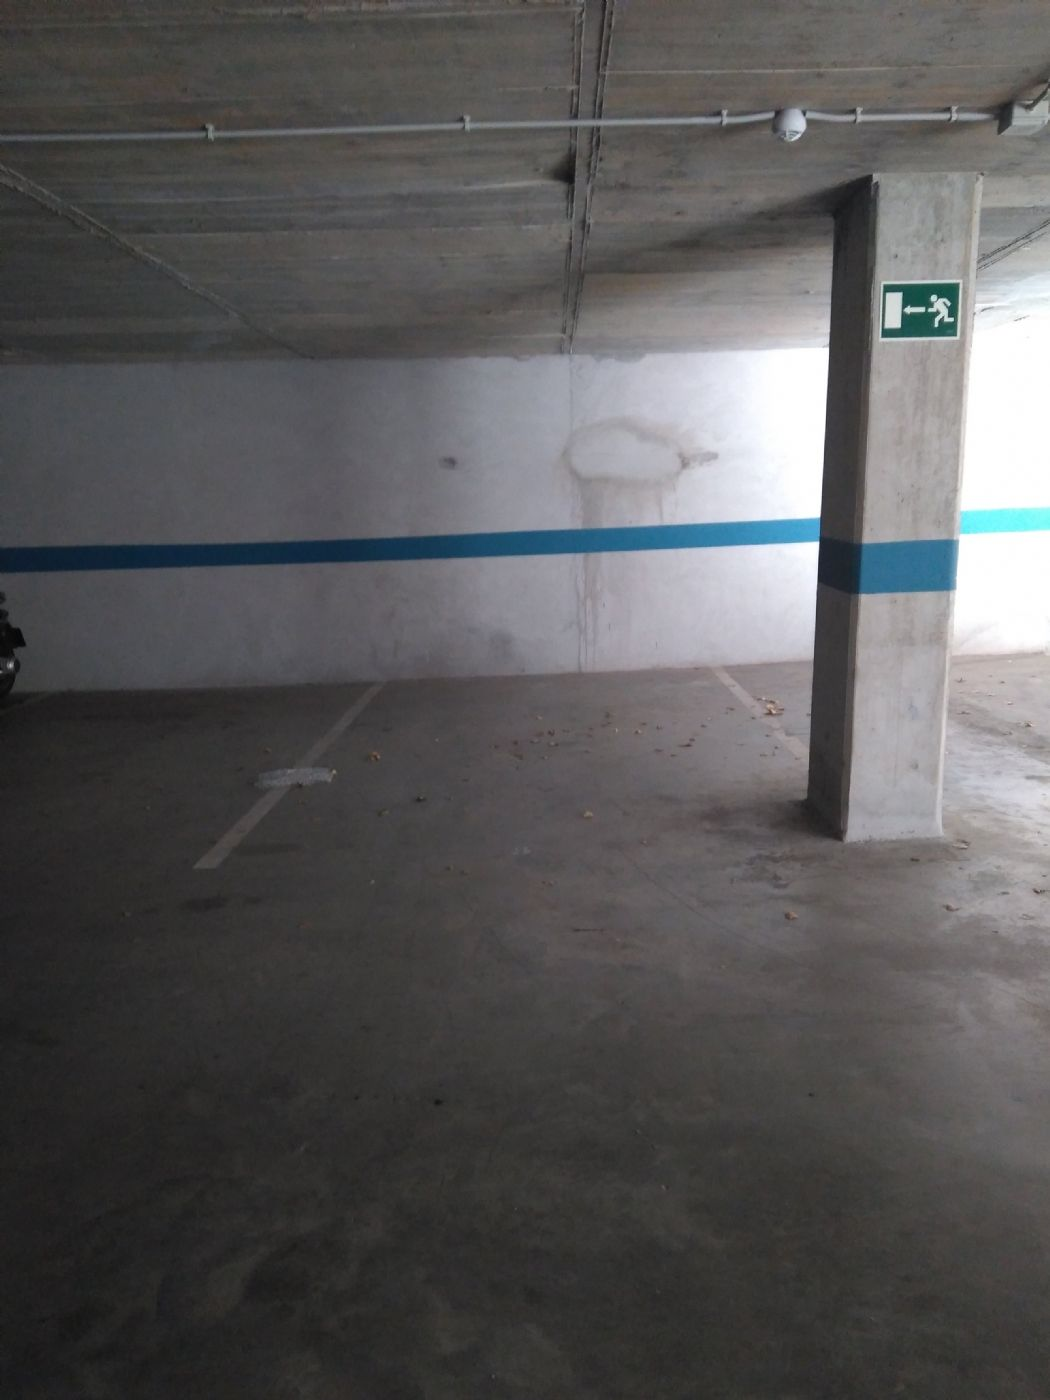 Location Parking voiture à Avinguda eduard maristany, 17. Plaza amplia en forum